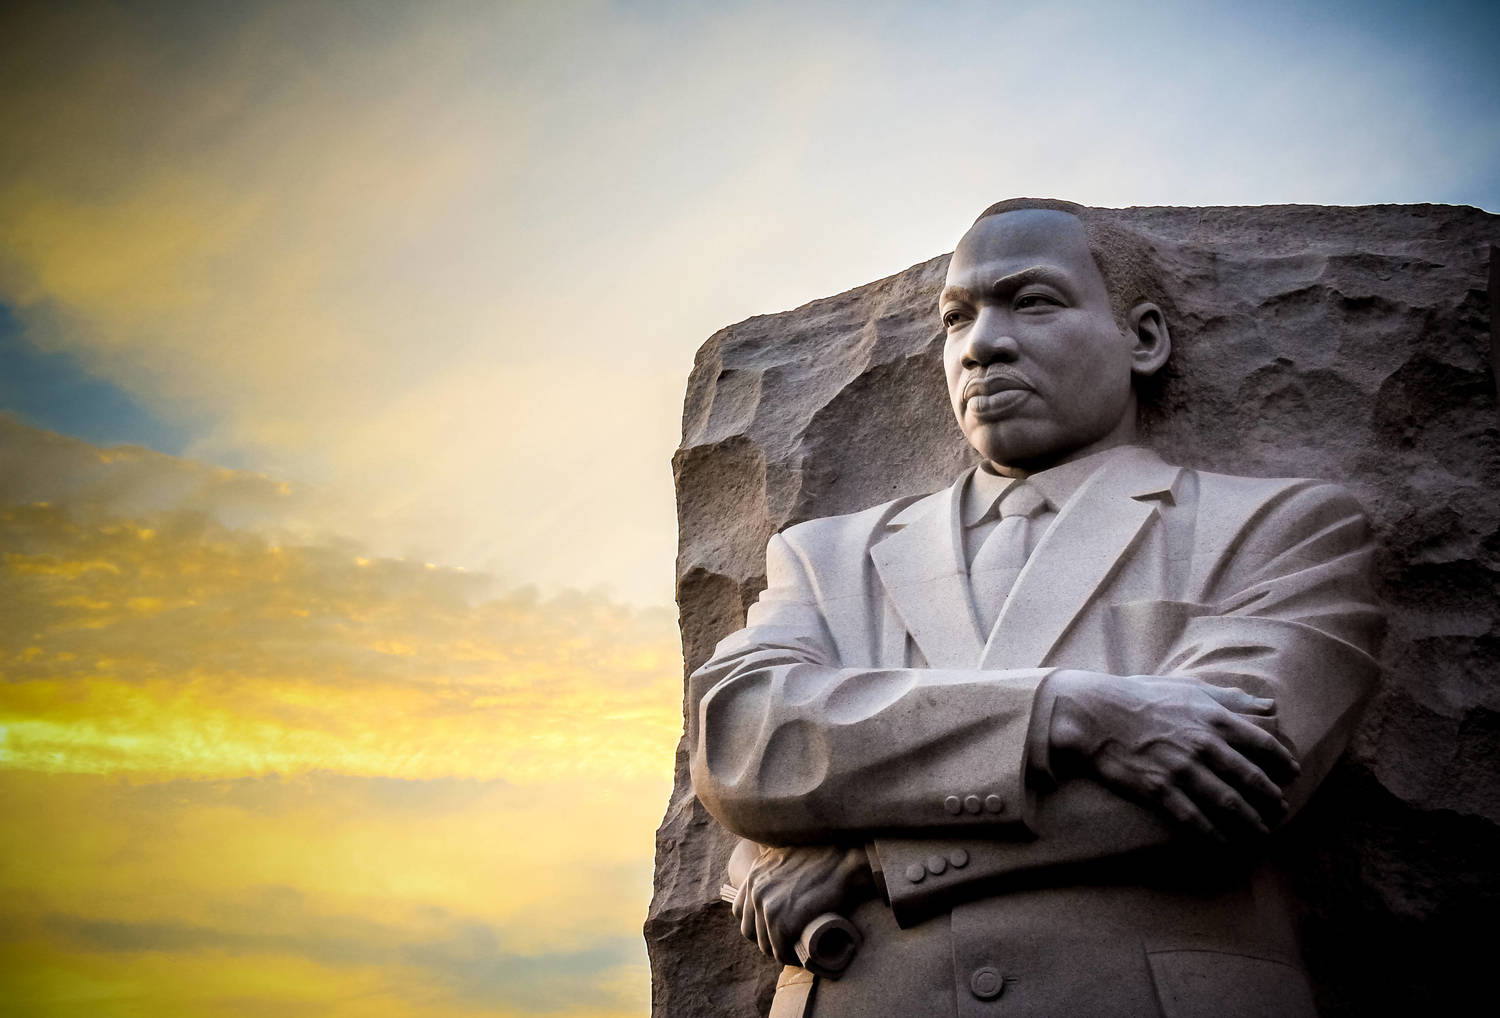 What Mlk And The Civil Rights Movement Mean To Hiv In The South